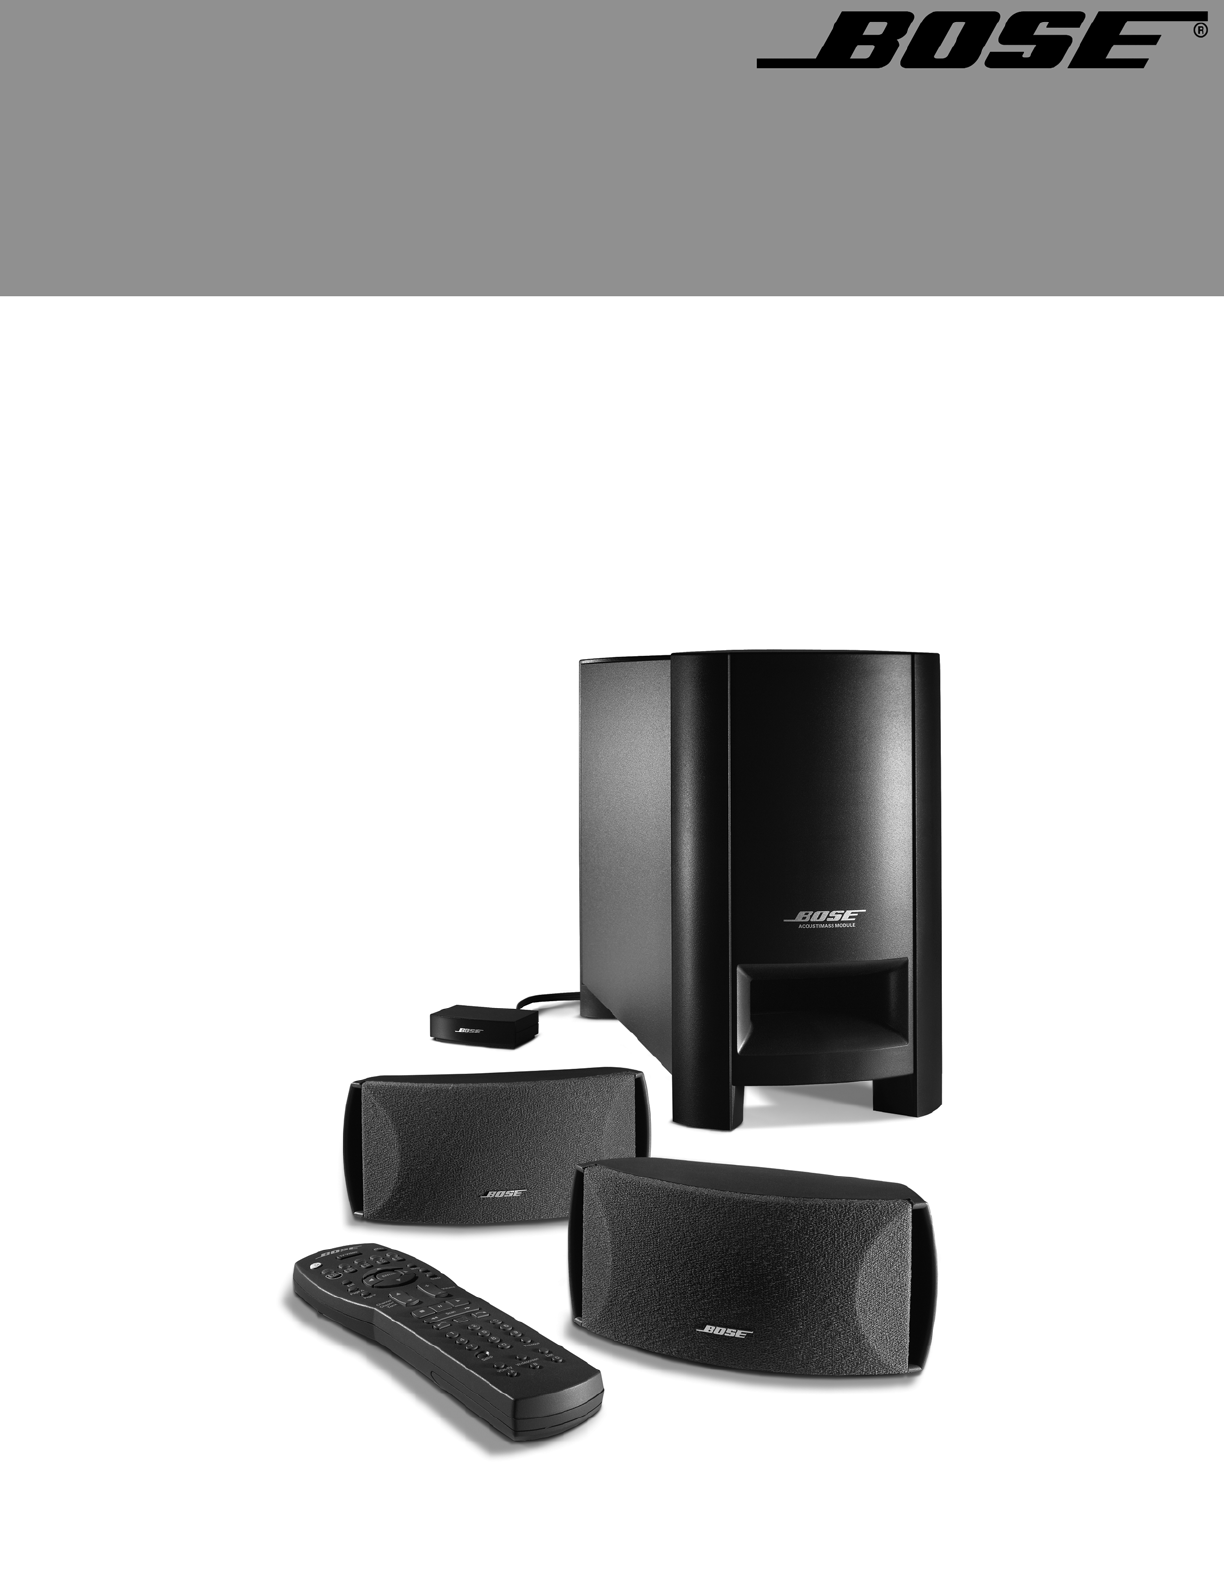 bose speaker system cinemate digital home theater speaker system user guide. Black Bedroom Furniture Sets. Home Design Ideas